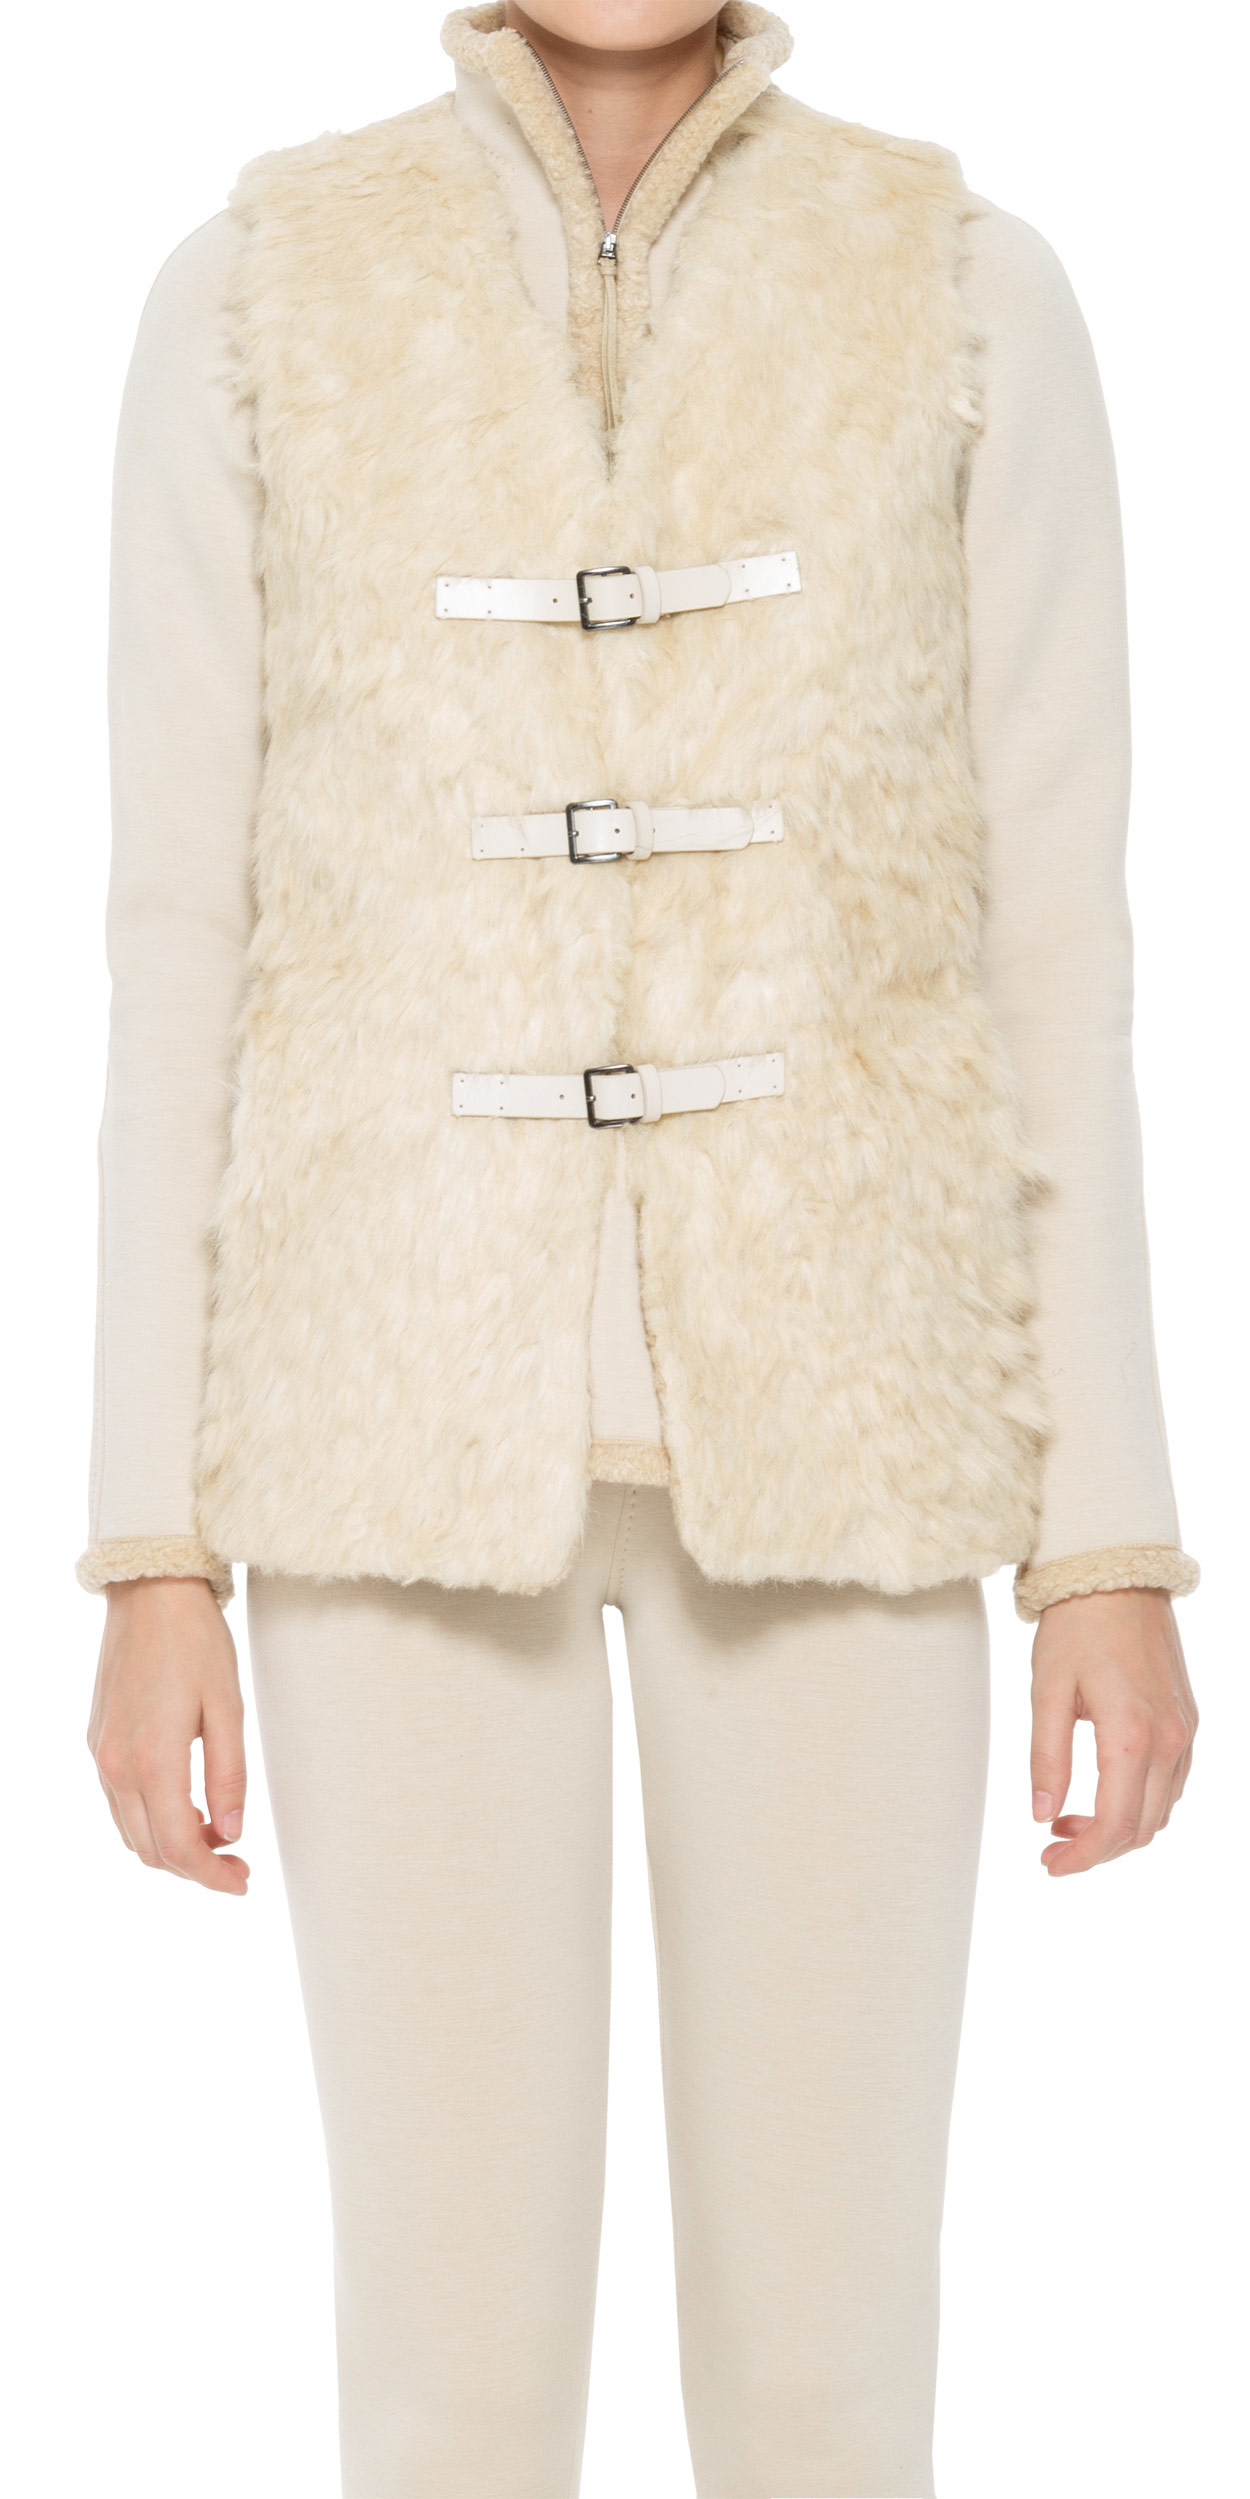 You searched for: beige faux fur vest! Etsy is the home to thousands of handmade, vintage, and one-of-a-kind products and gifts related to your search. No matter what you're looking for or where you are in the world, our global marketplace of sellers can help you find unique and affordable options. Let's get started!